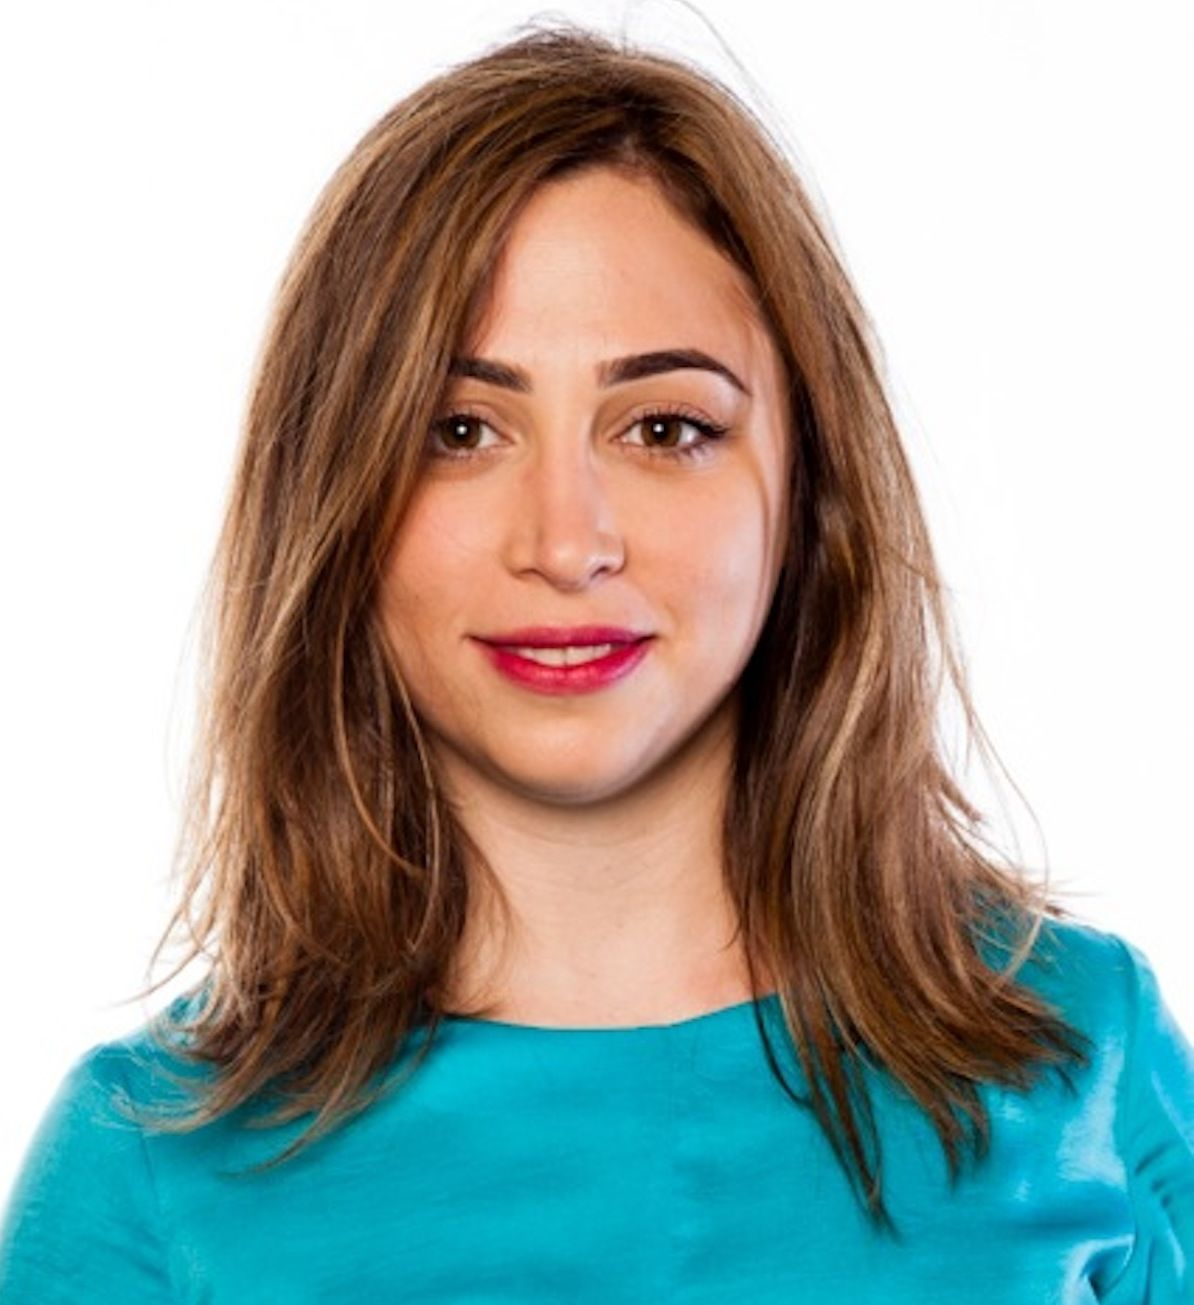 headshot of Ayah Bdeir